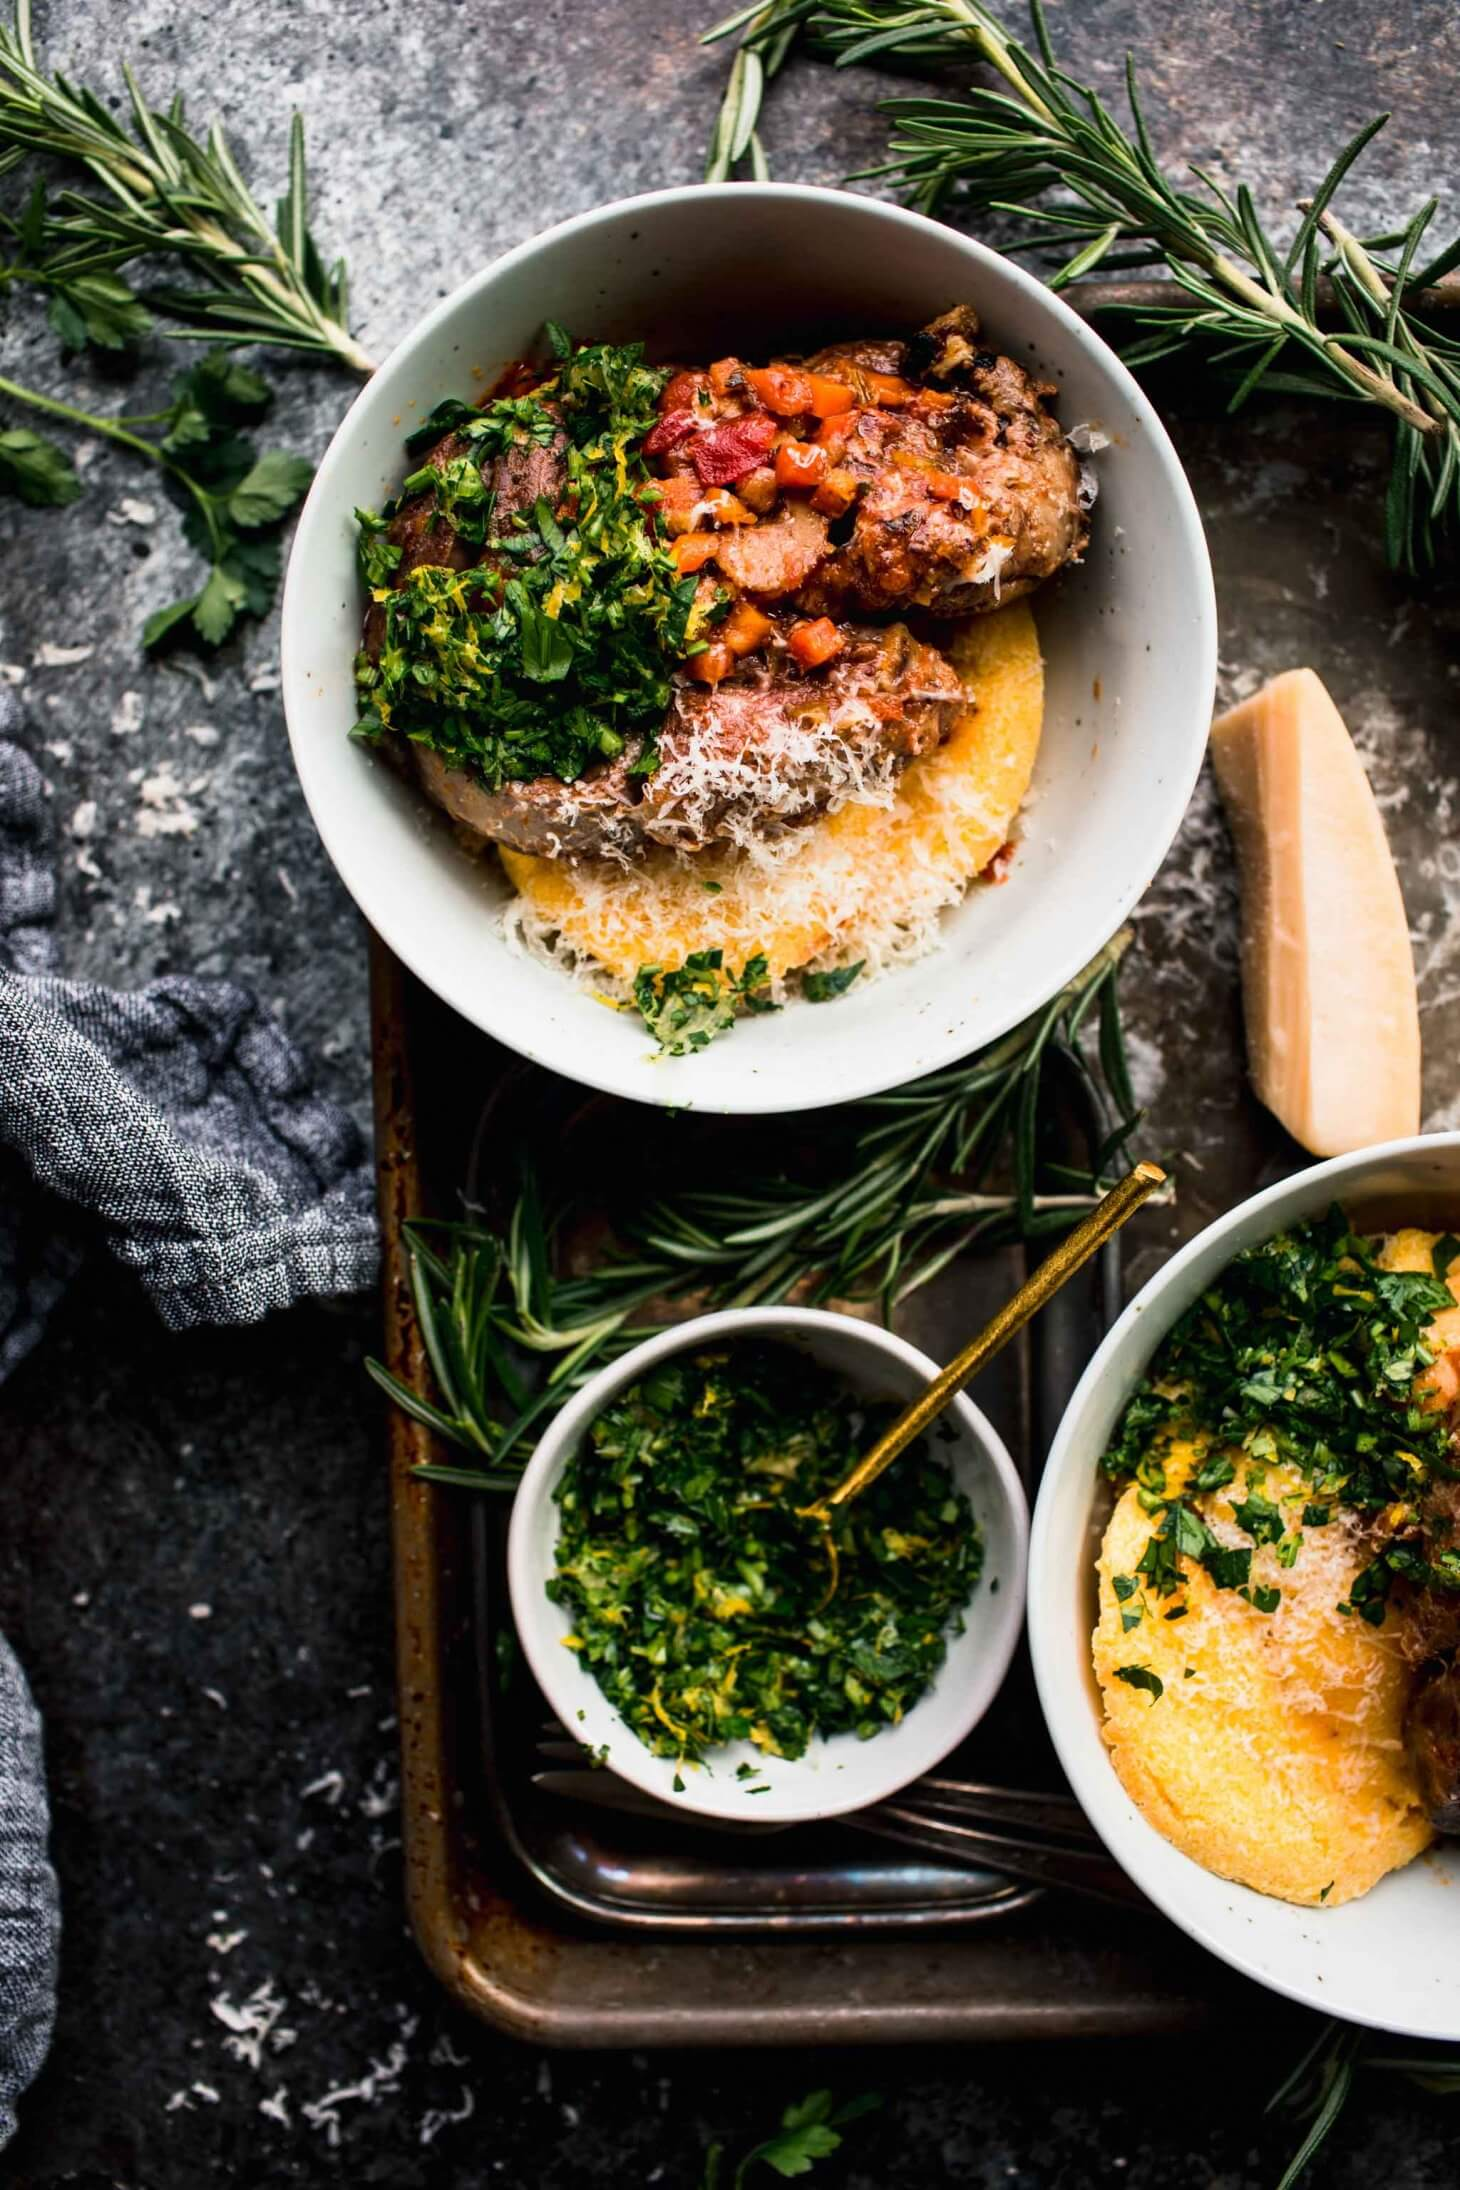 Two bowls of prepared osso buco on top of polenta on serving tray next to sprigs of fresh herbs and bowl of gremolata.